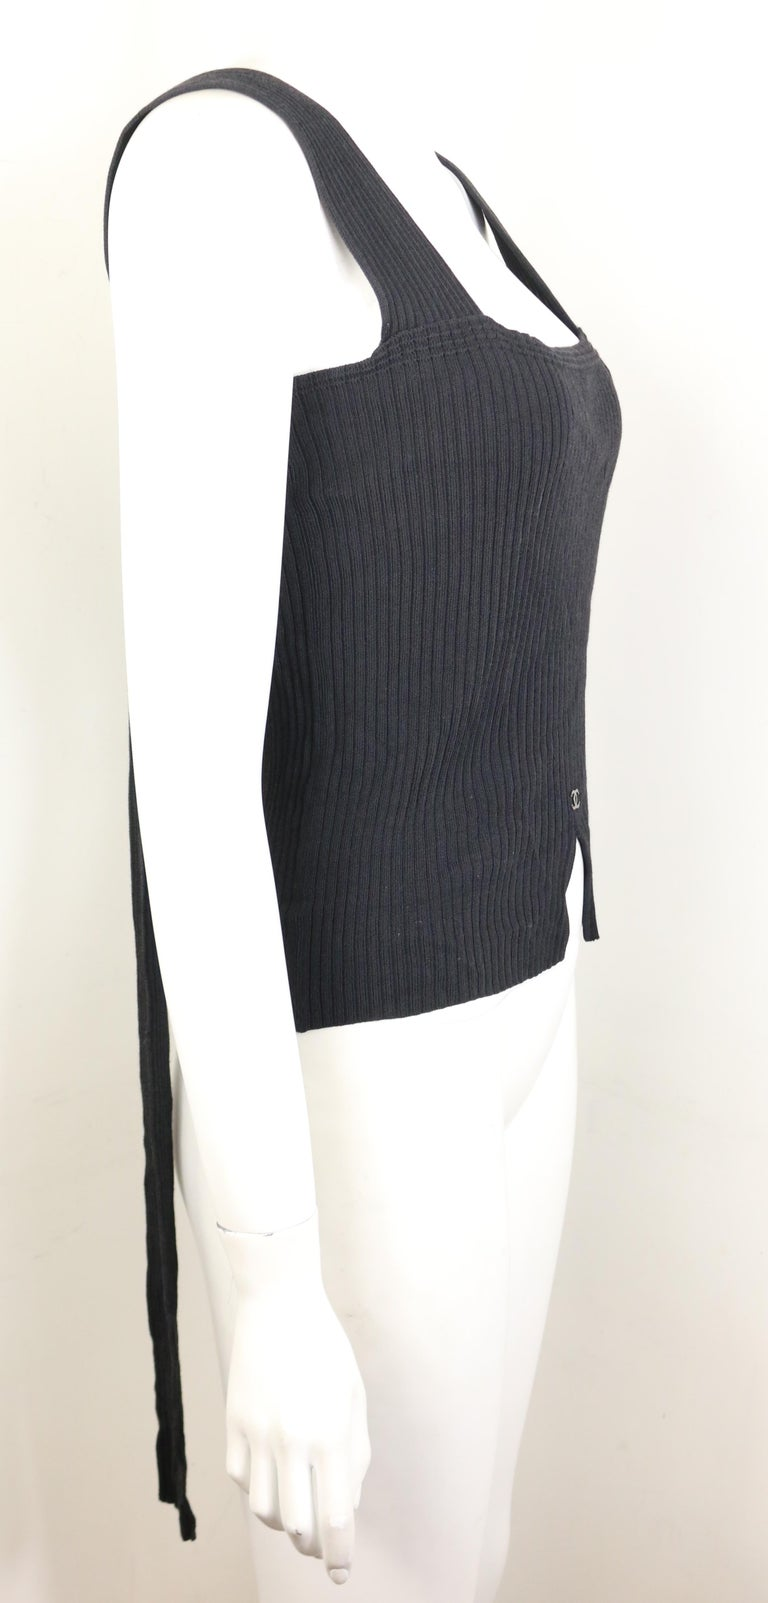 Chanel Black Knitted Cotton and Rayon Sleeveless Top For Sale 1